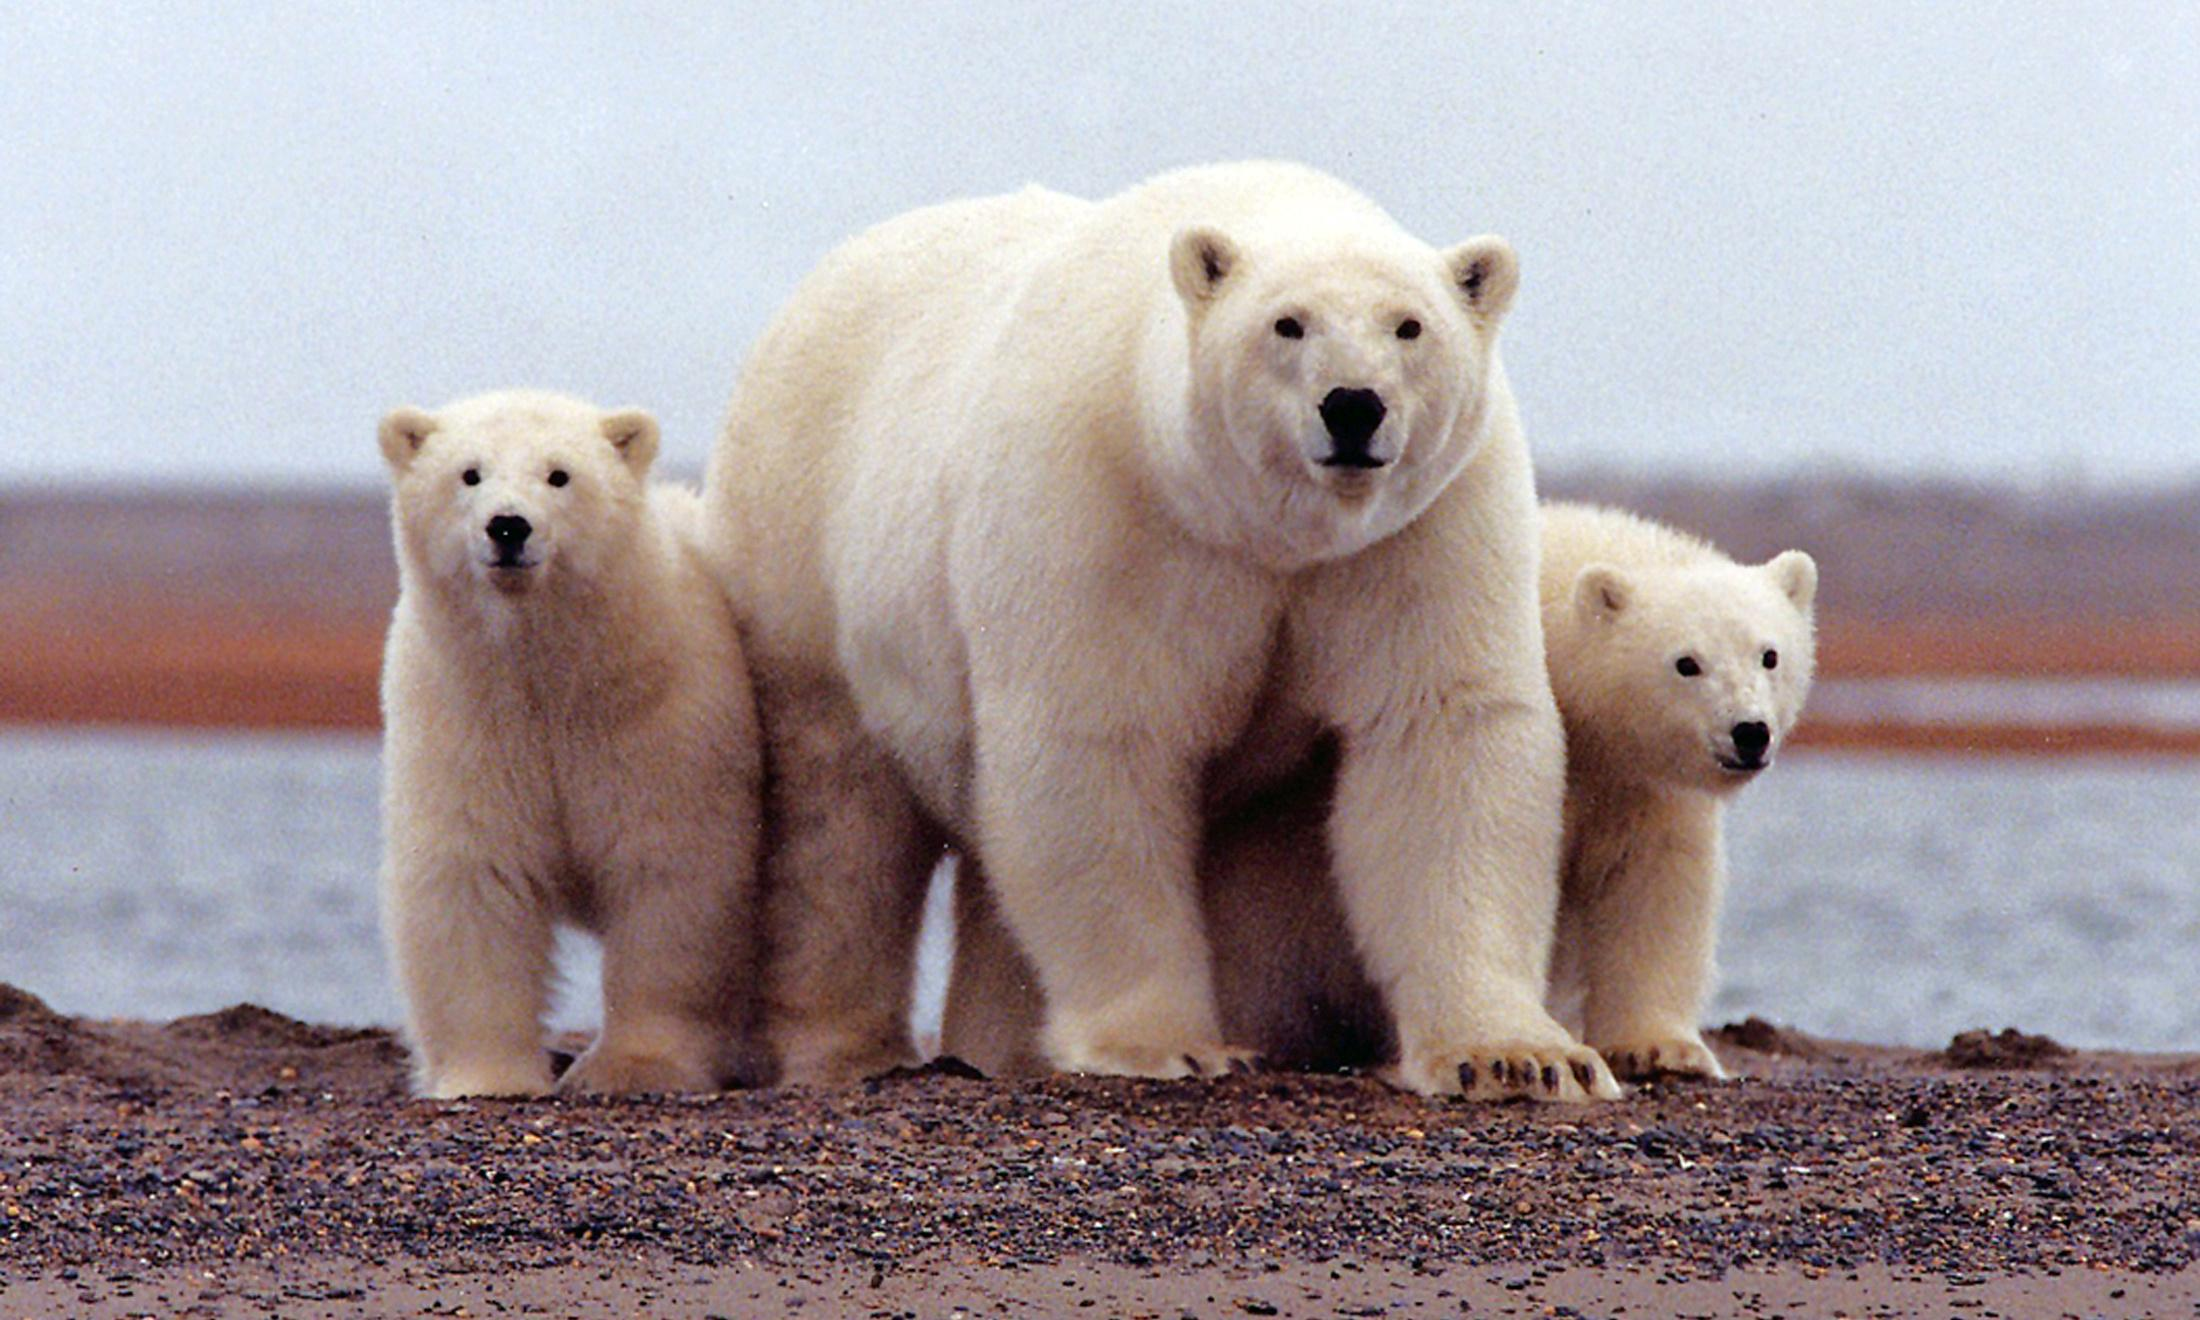 Trump opens protected Alaskan Arctic refuge to oil drillers